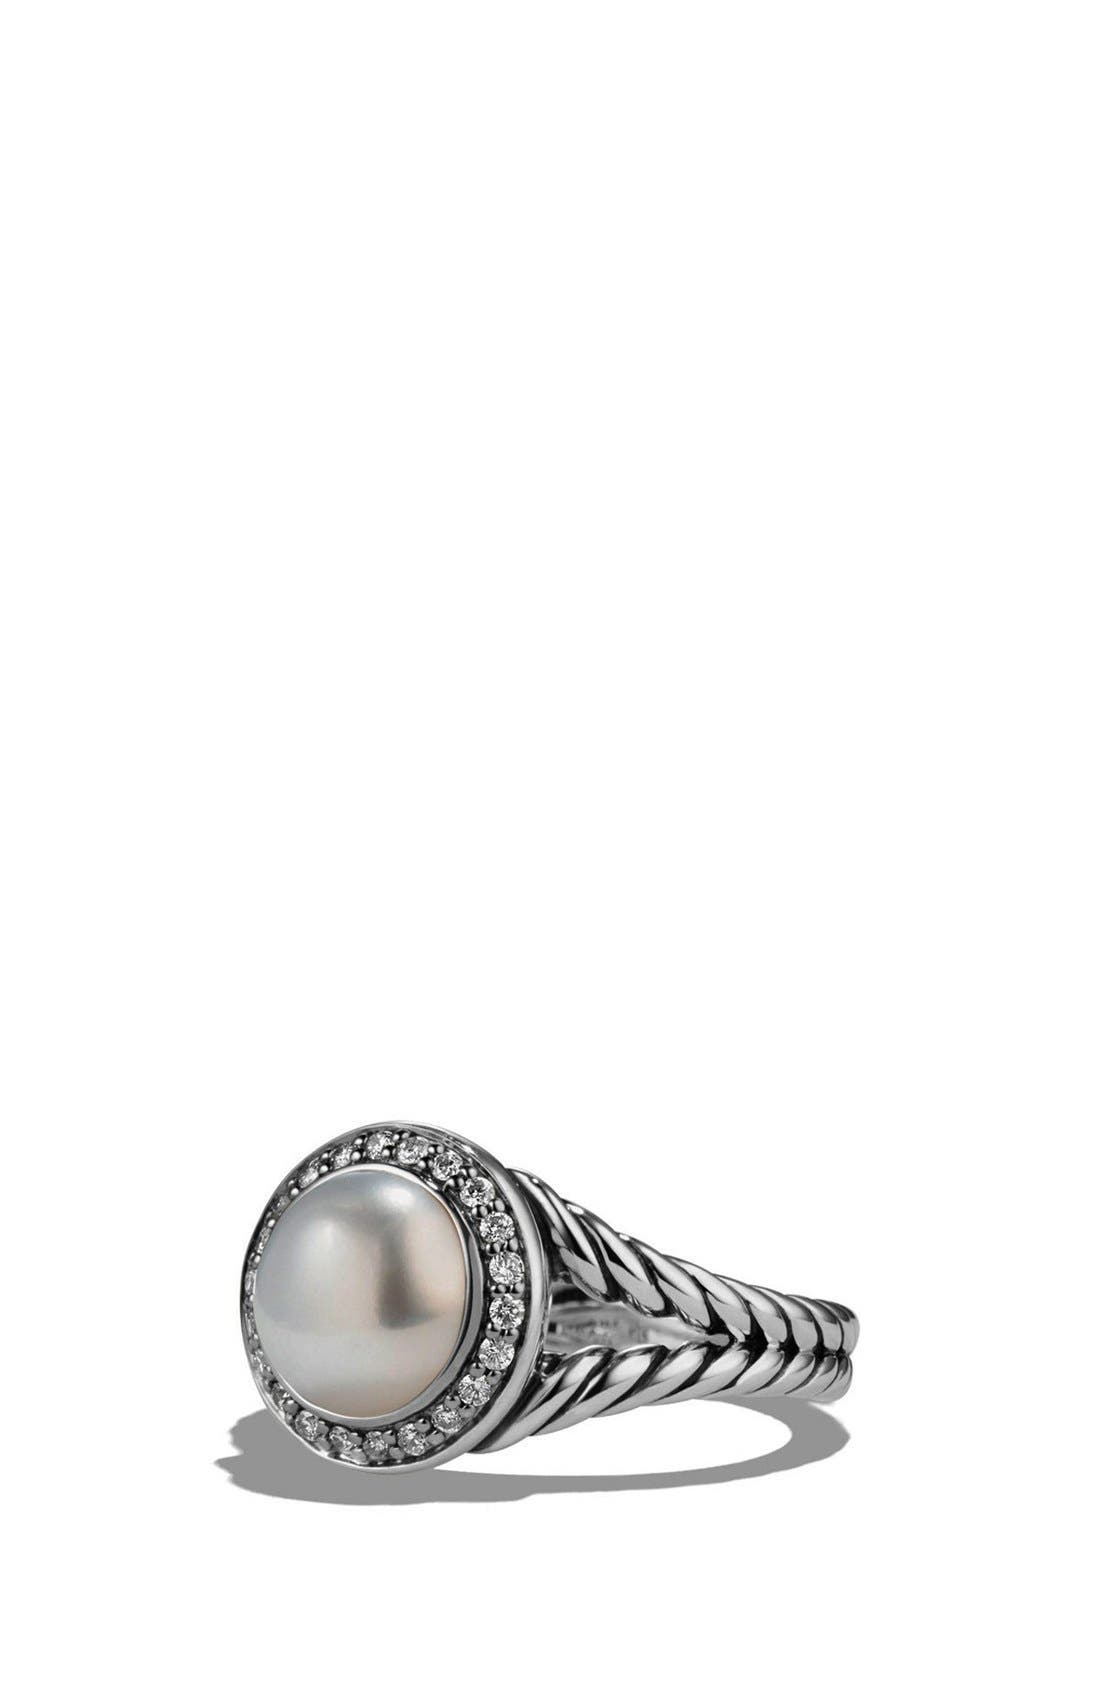 'Cerise' Ring with Pearl and Diamonds,                             Main thumbnail 1, color,                             SILVER/ PEARL